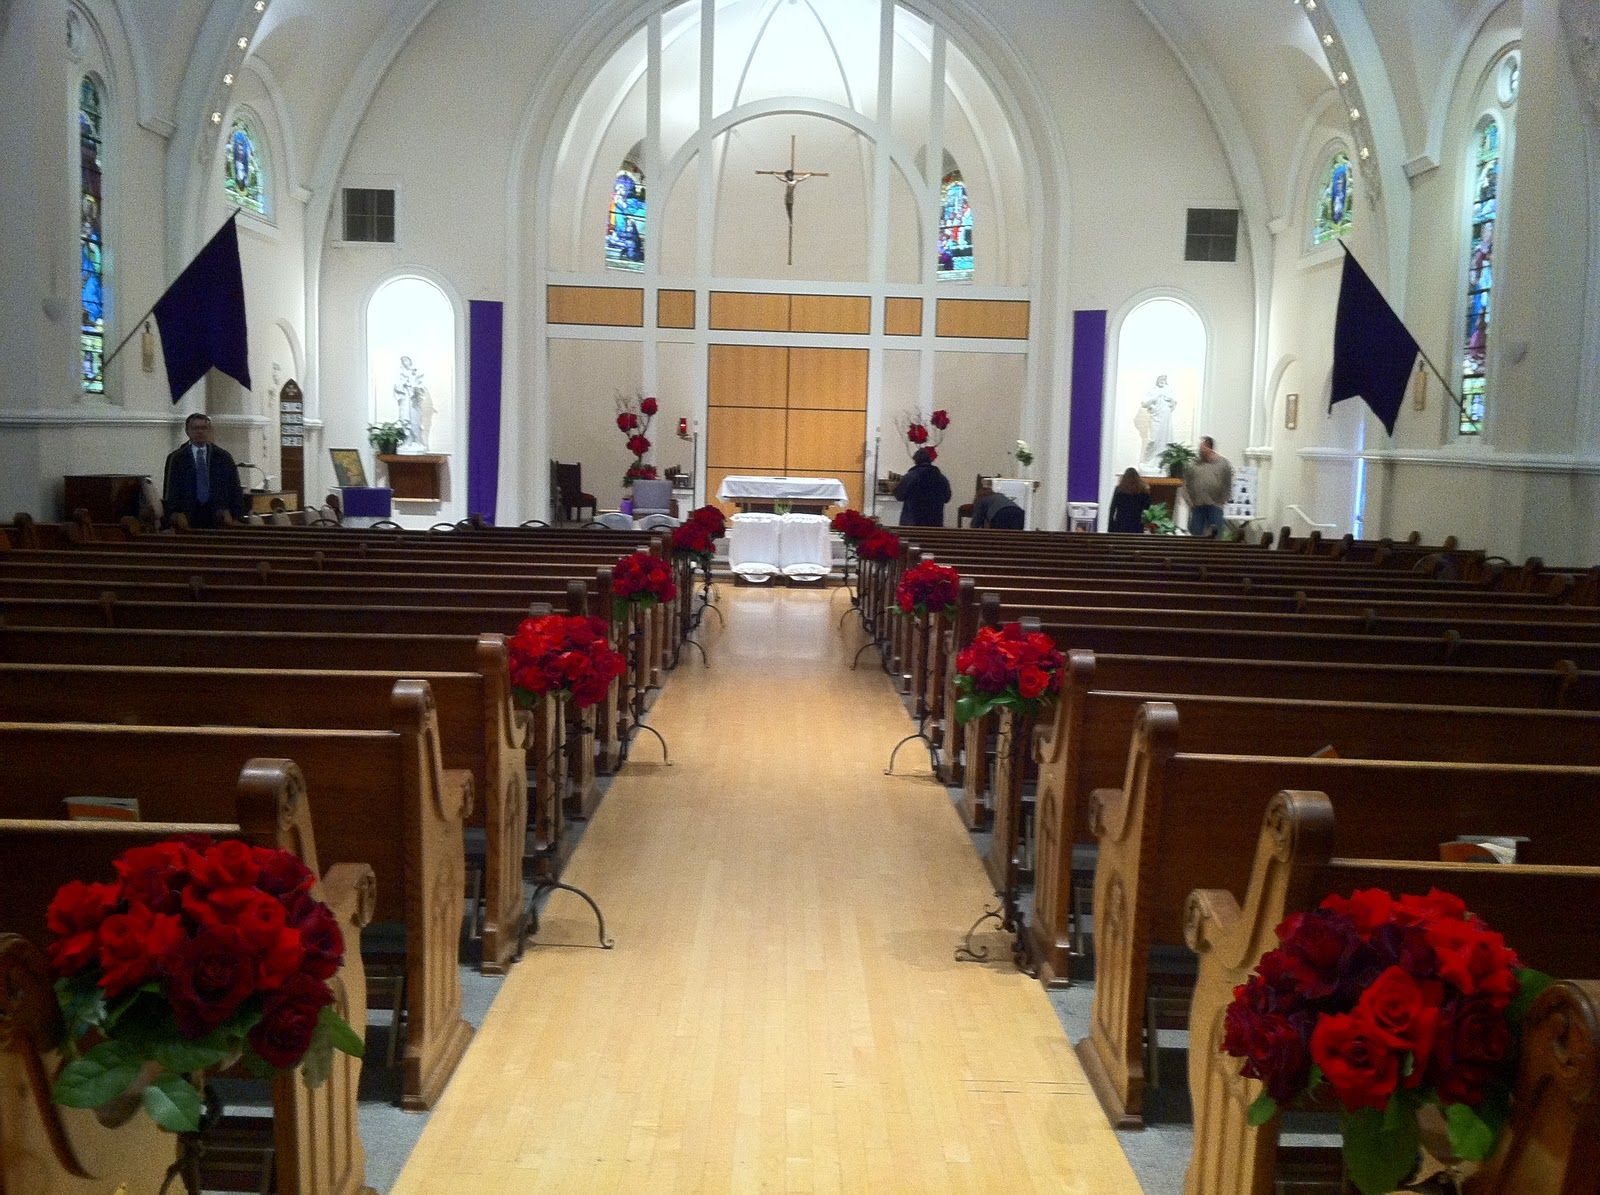 Traditional church wedding decorations red rose aisle decor in a traditional church wedding decorations red rose aisle decor in a traditional catholic church junglespirit Images